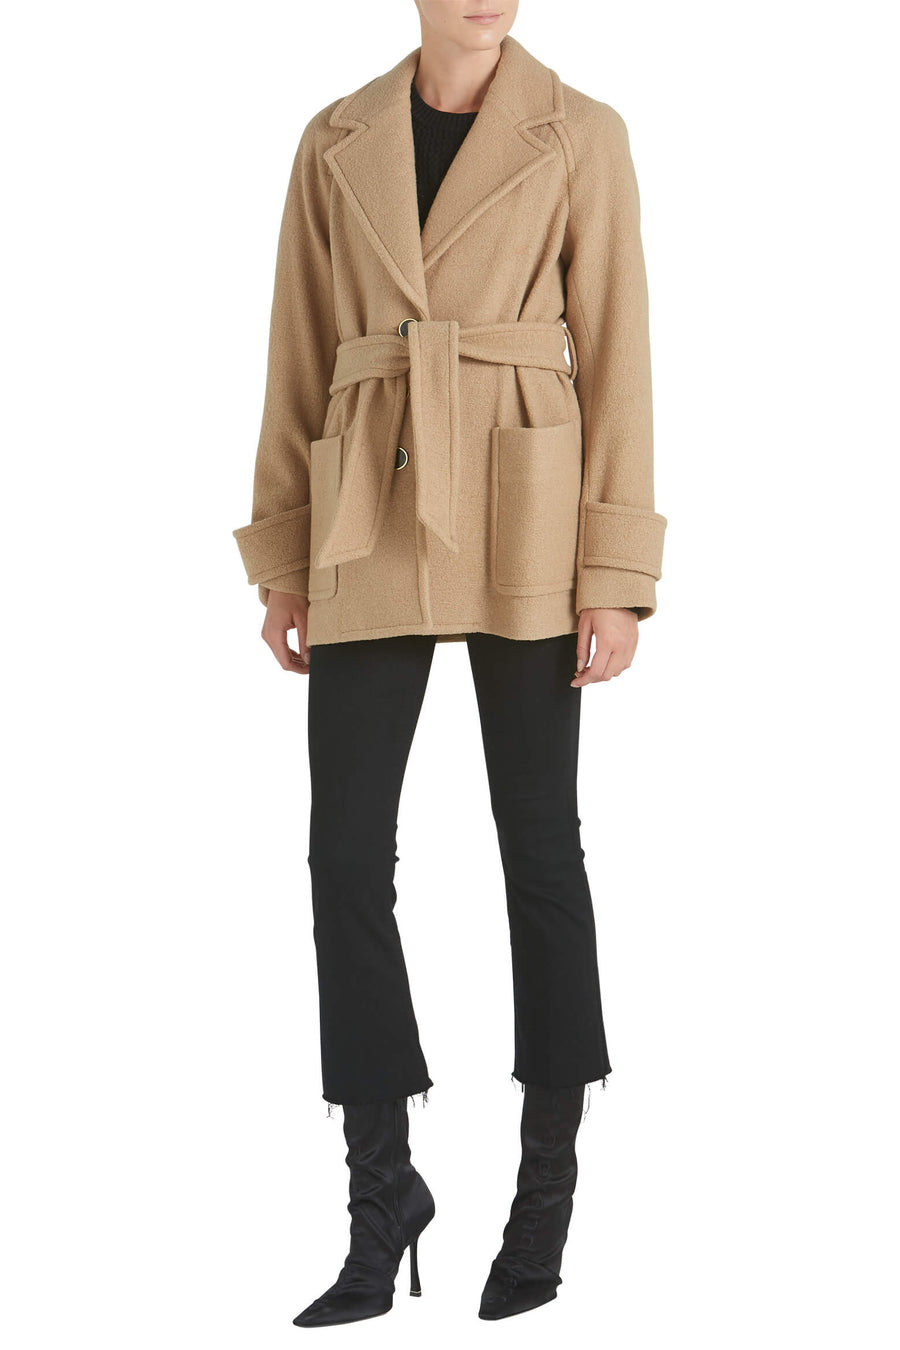 Veronica Beard Bjorn Coat at The New Trend